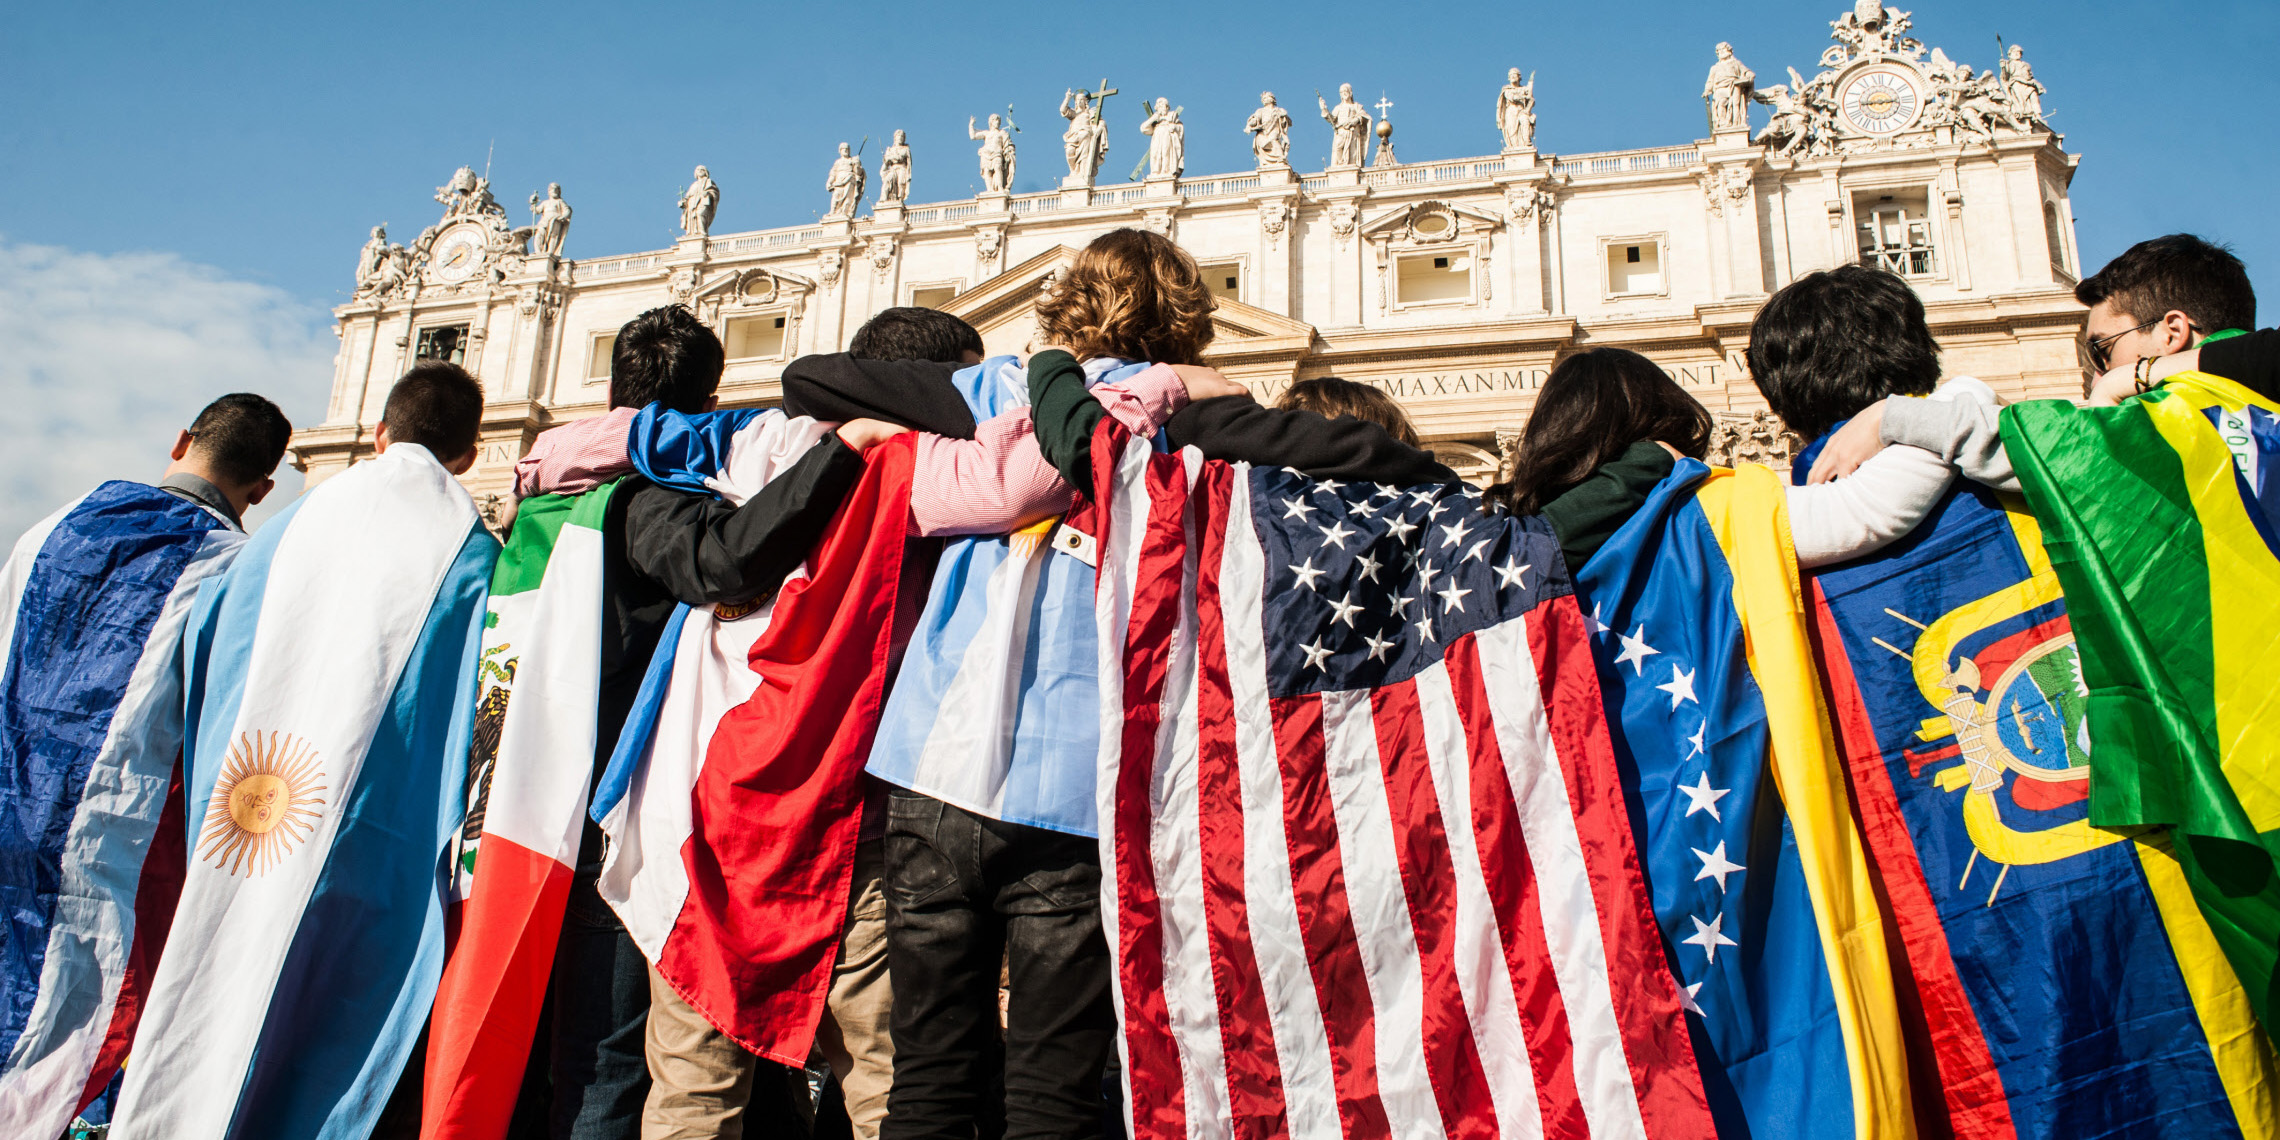 ST PETER FLAGS